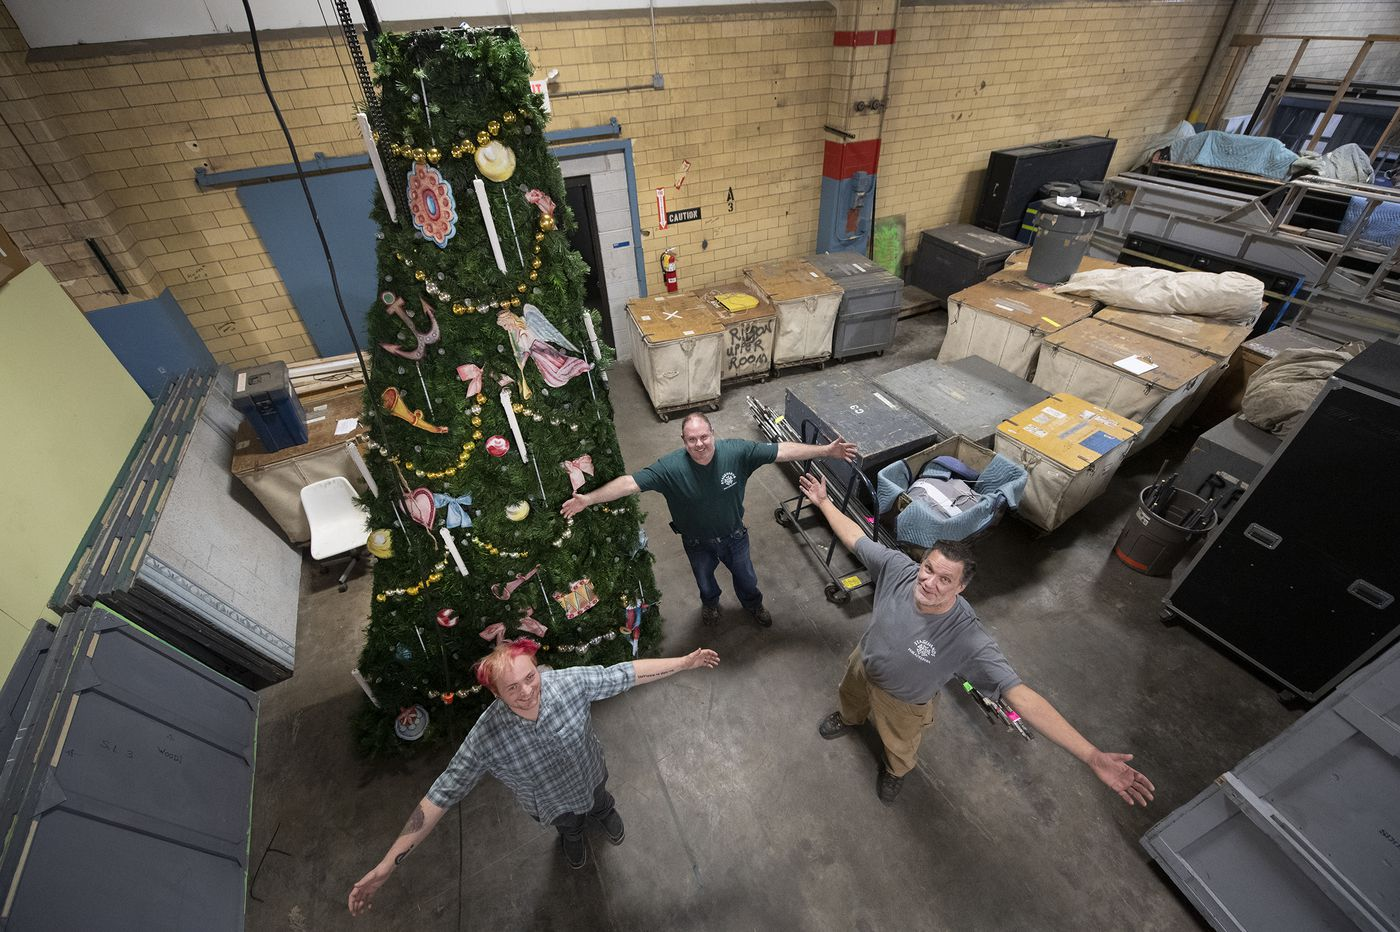 Pa. Ballet's 'Nutcracker' Christmas tree just got a $100,000 makeover